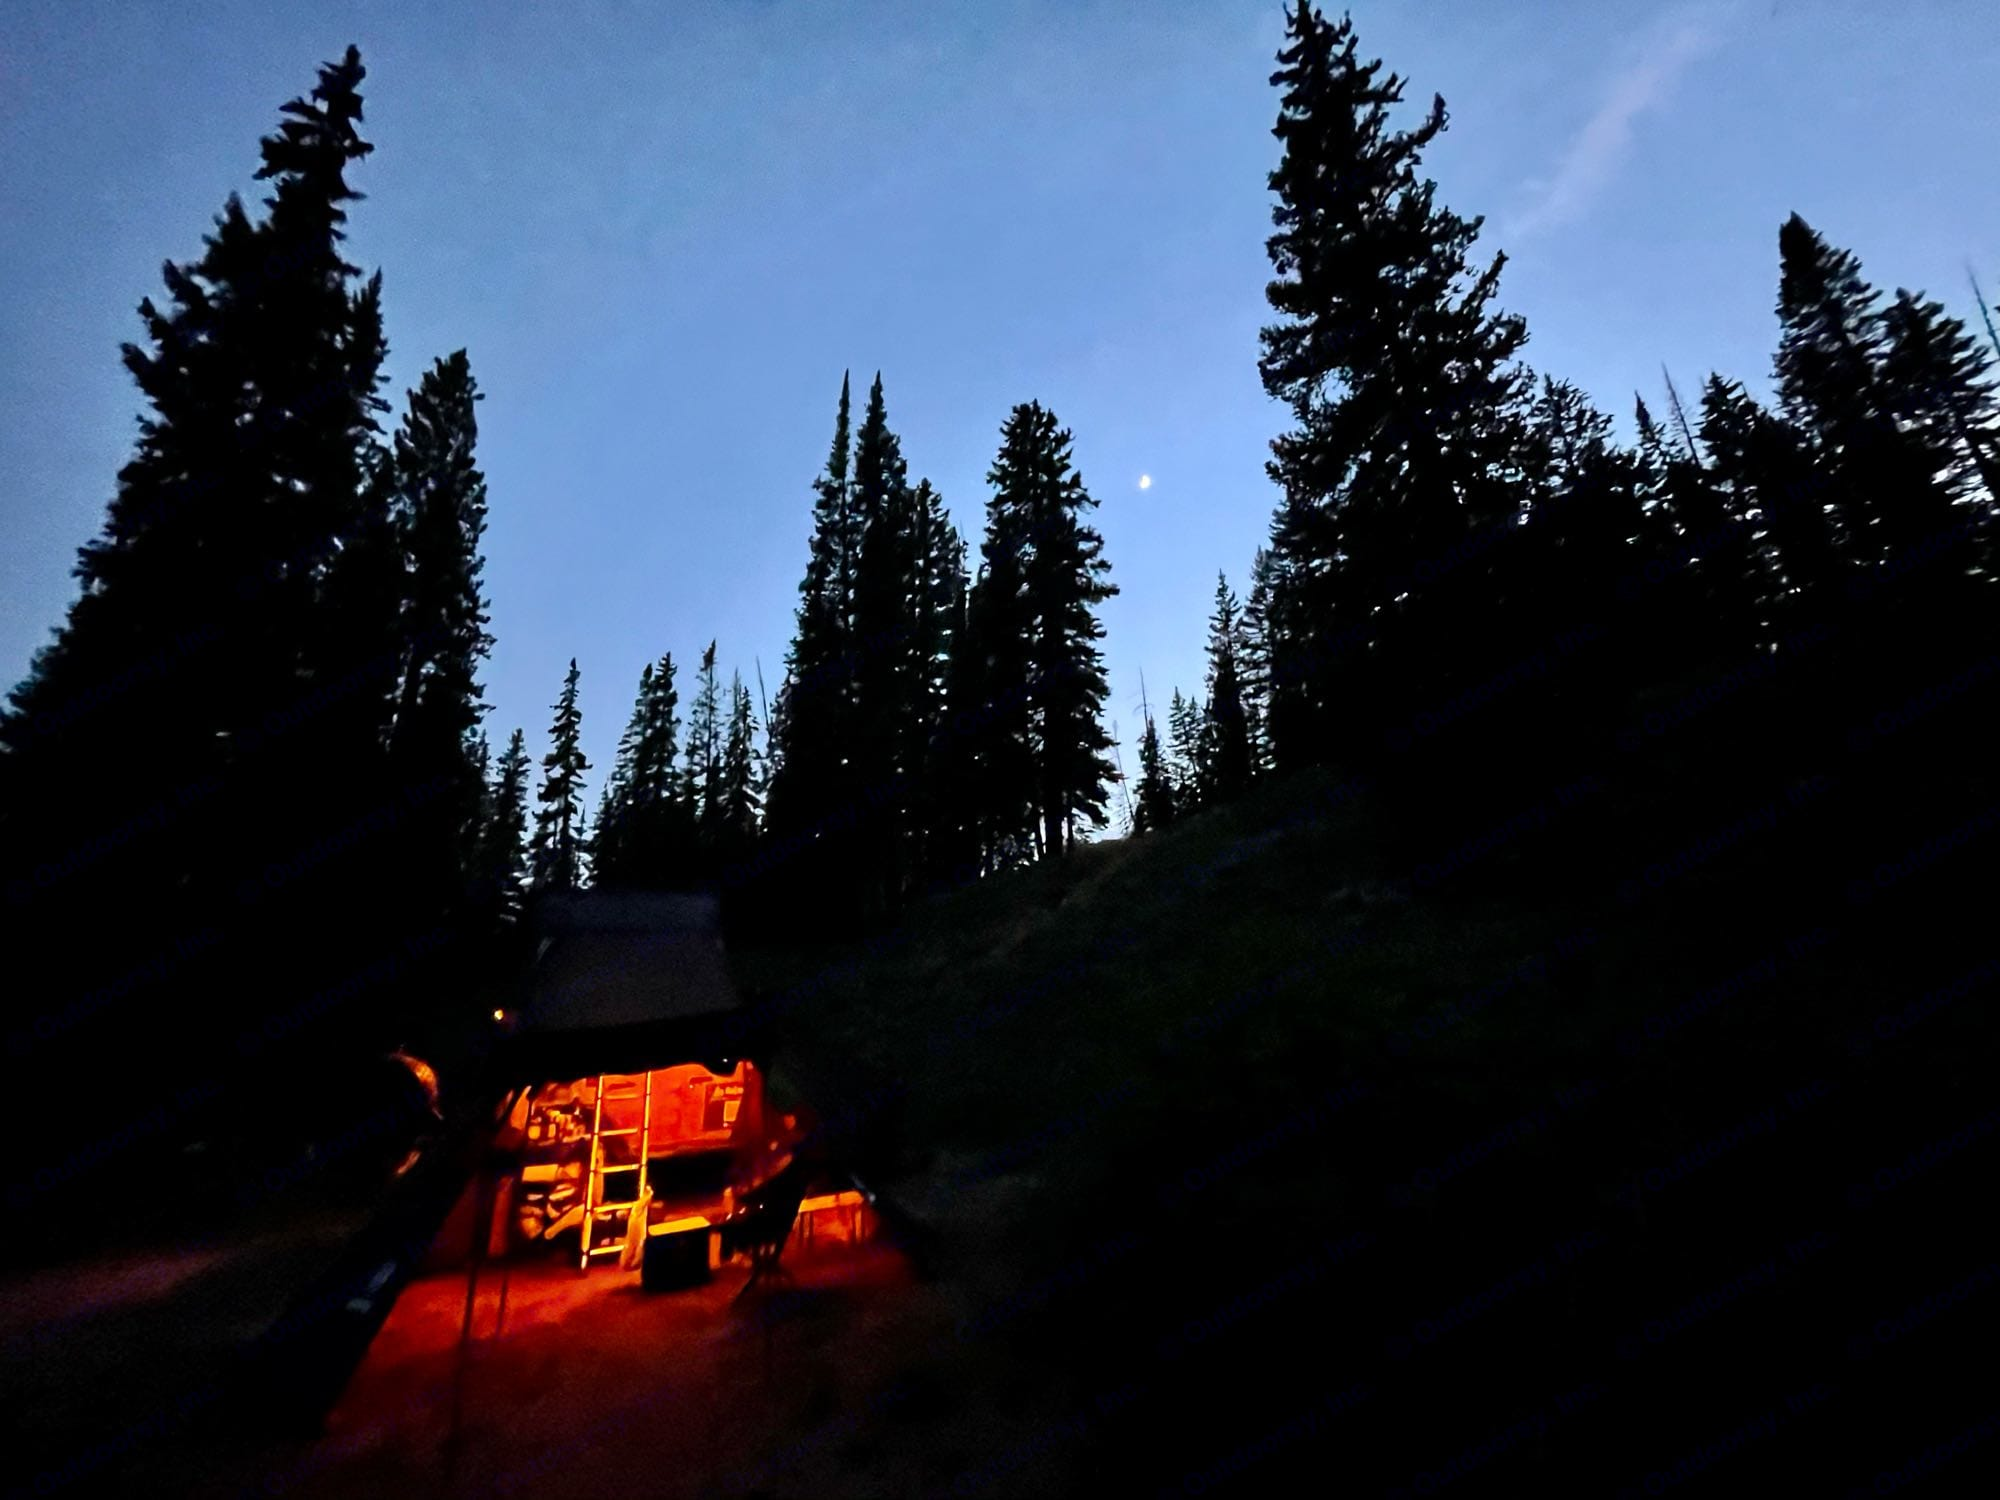 """""""Of all the books in the world, the best stories are found between the trees.""""  Near Crested Butte, Colorado - July 2021. Jeep Wrangler Unlimited Sport S 2015"""